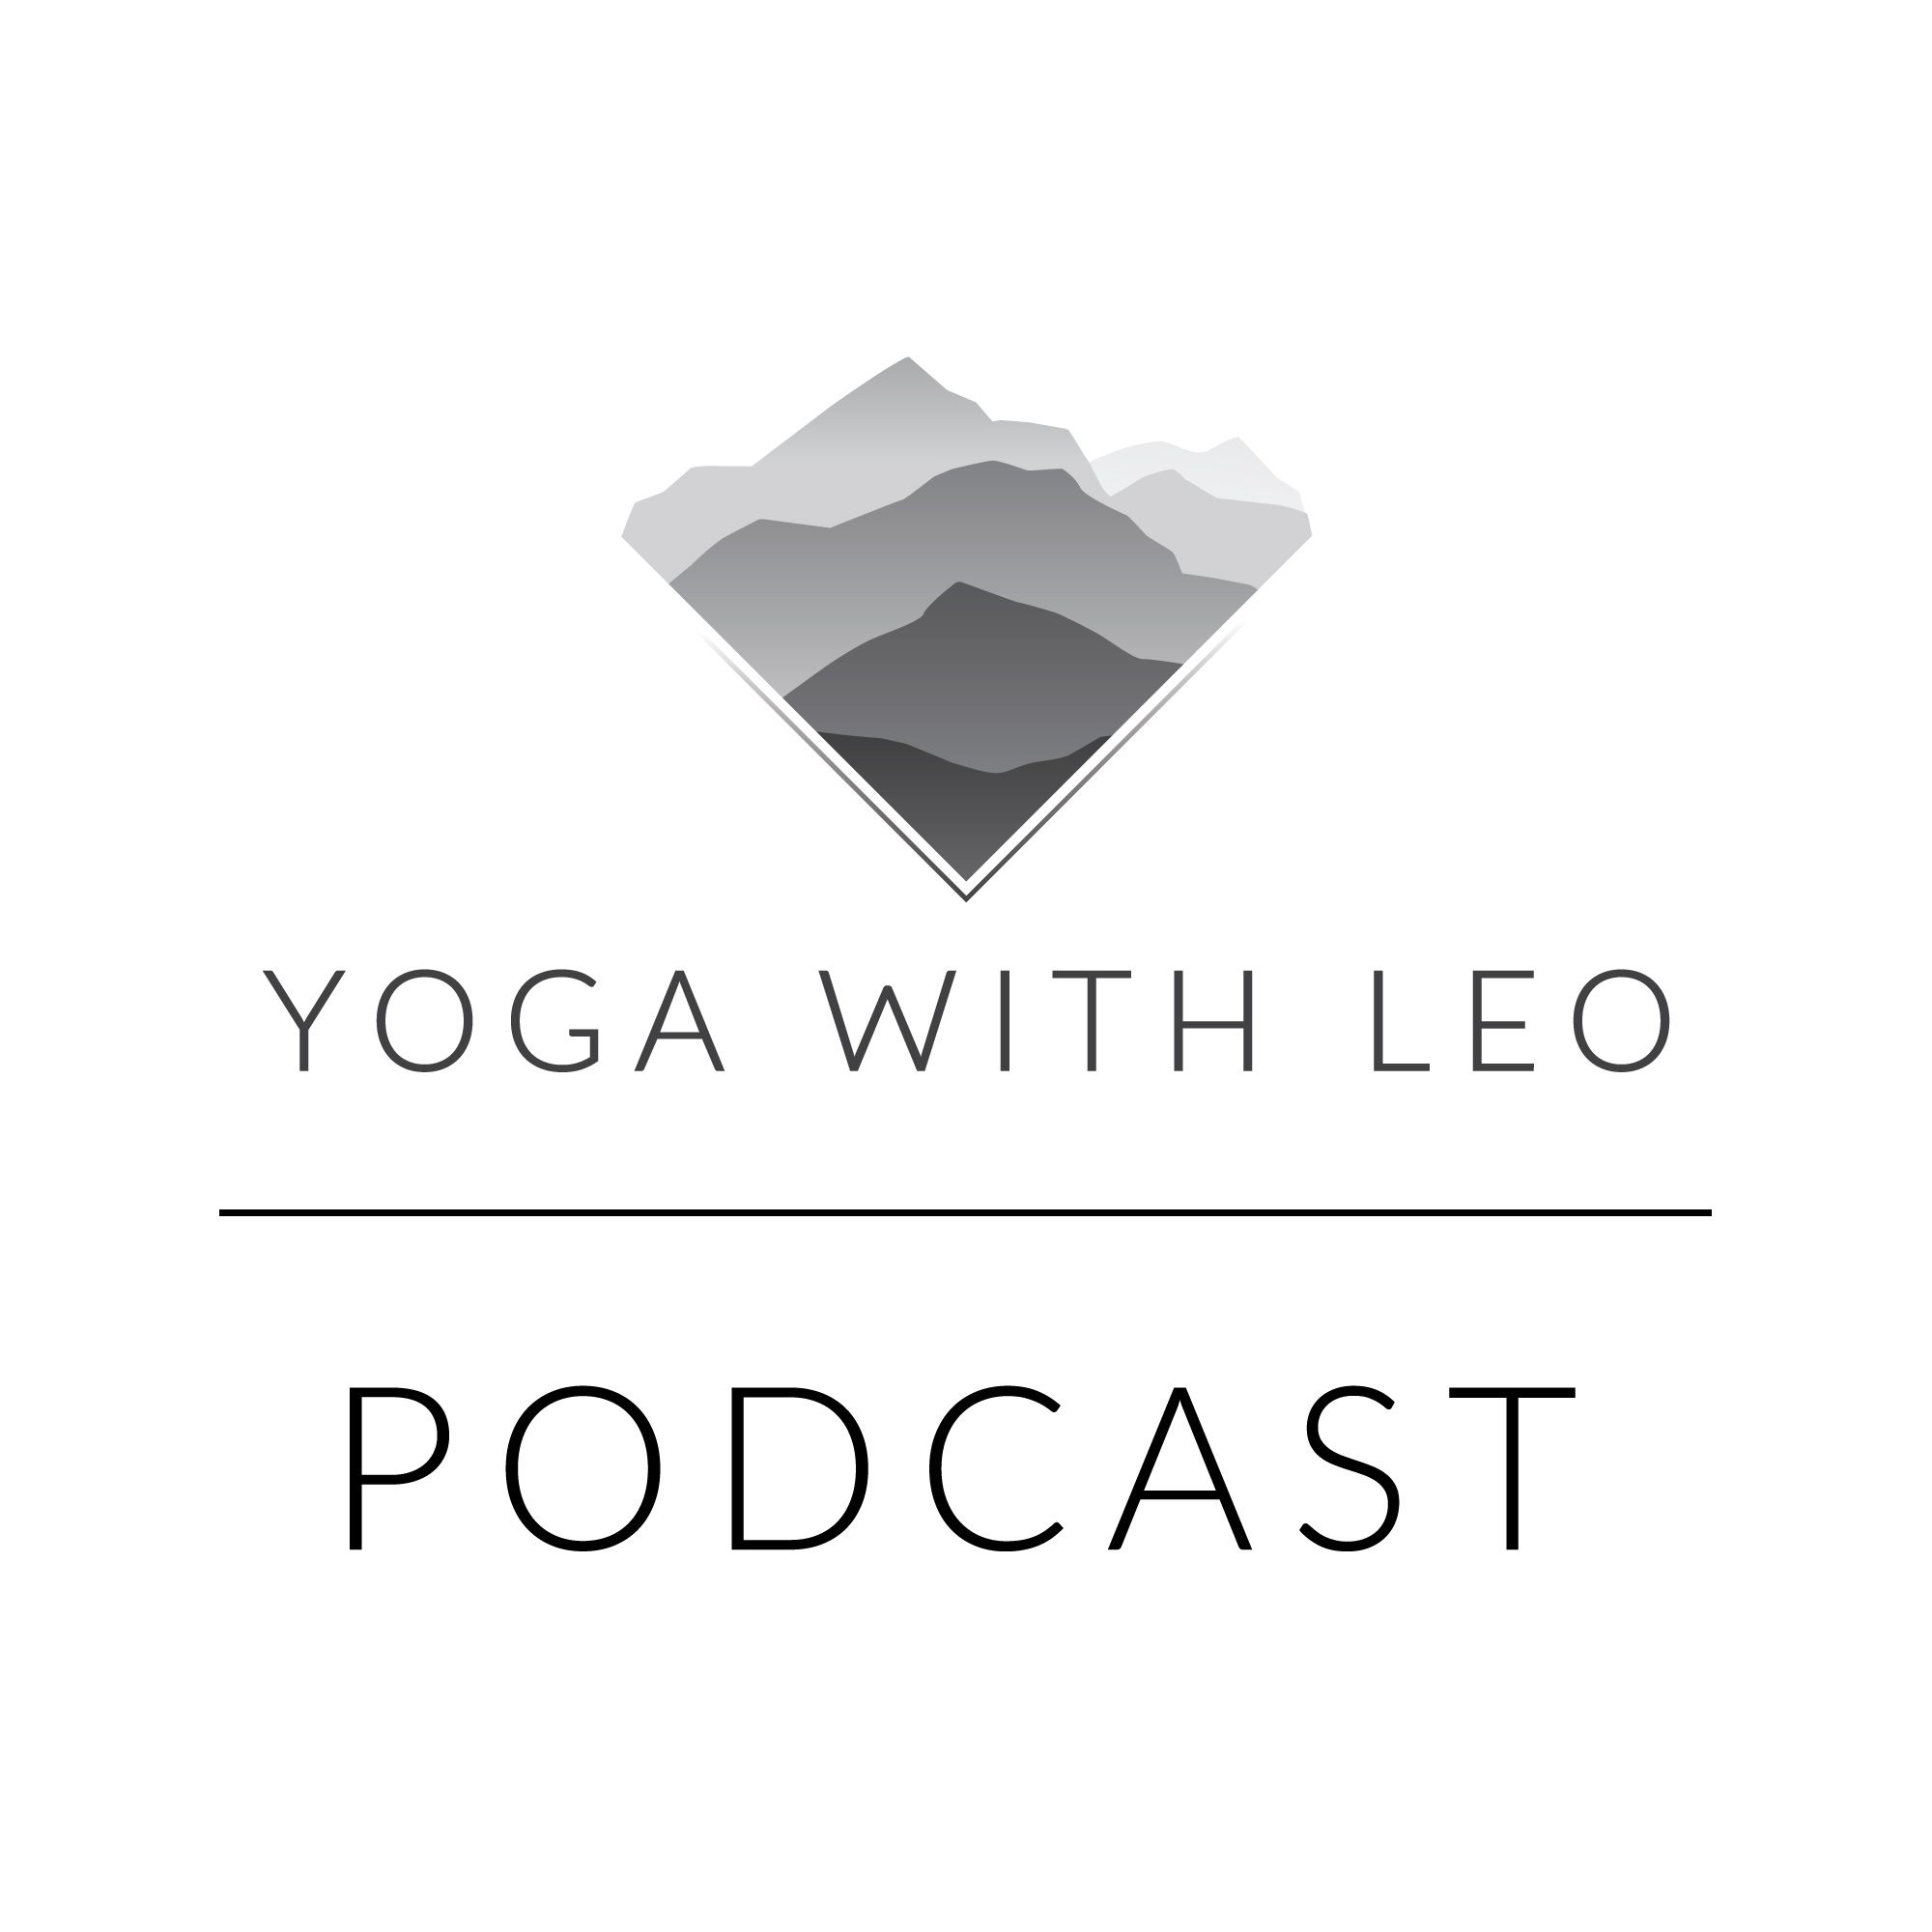 Yoga With Leo Podcast